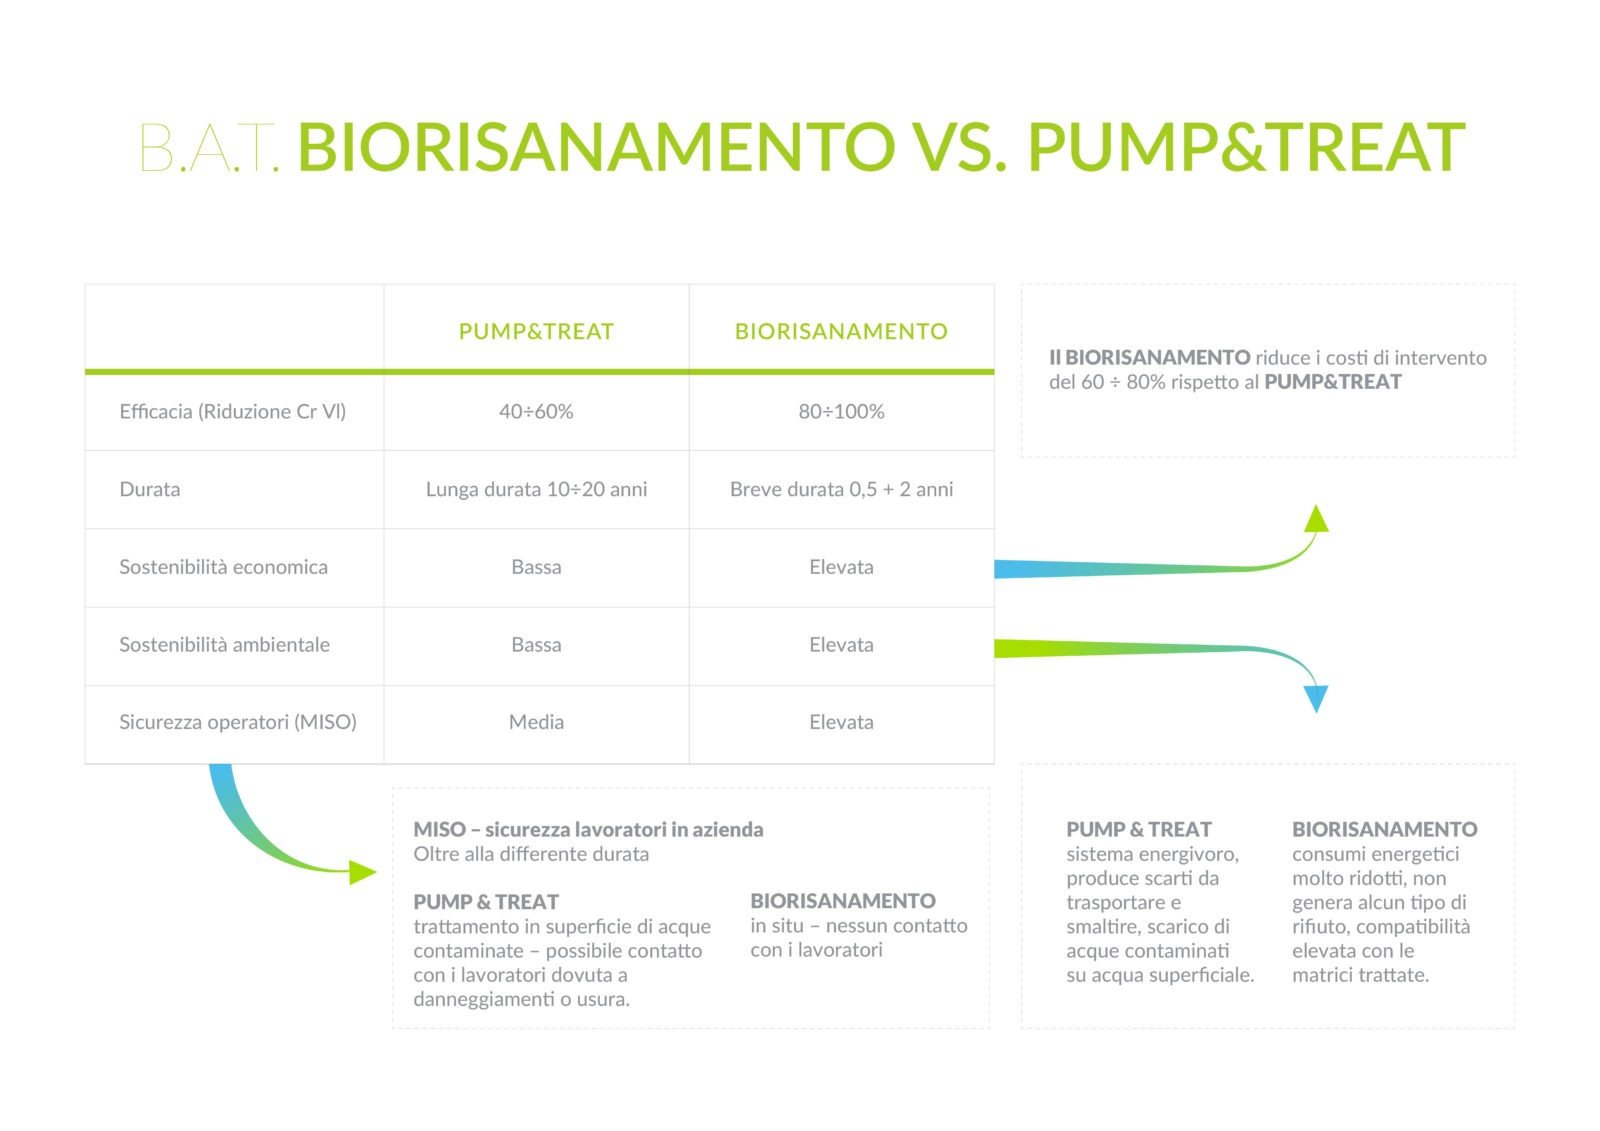 Confronto tra biorisanamento e Pump & Treat